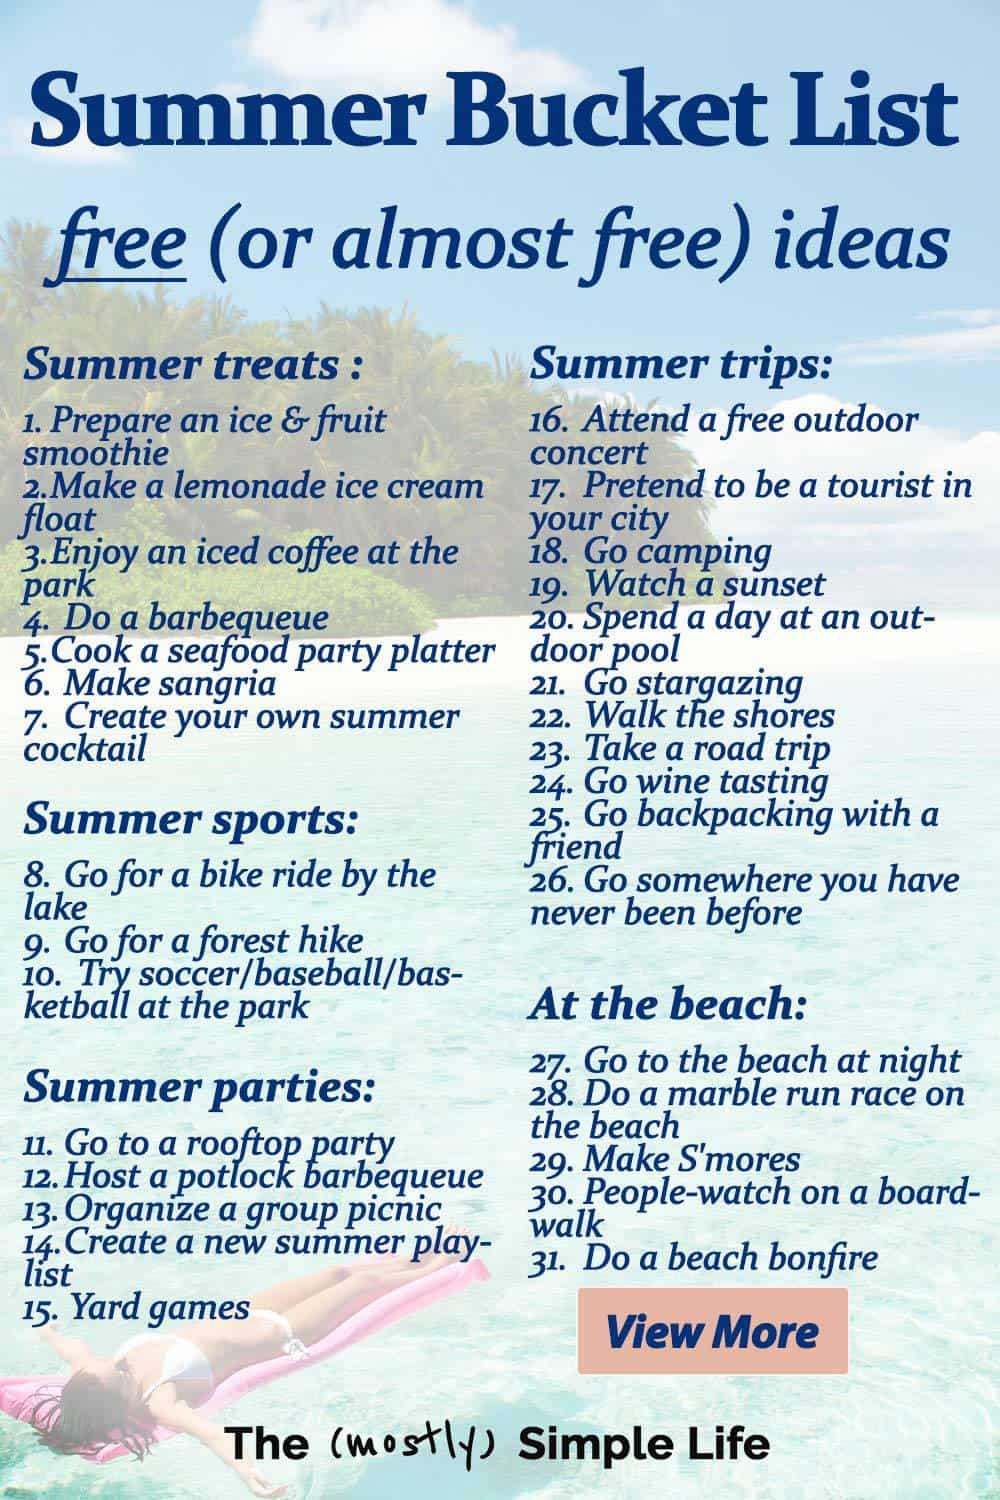 Summer Bucket List of Free (Or Almost Free) Ideas